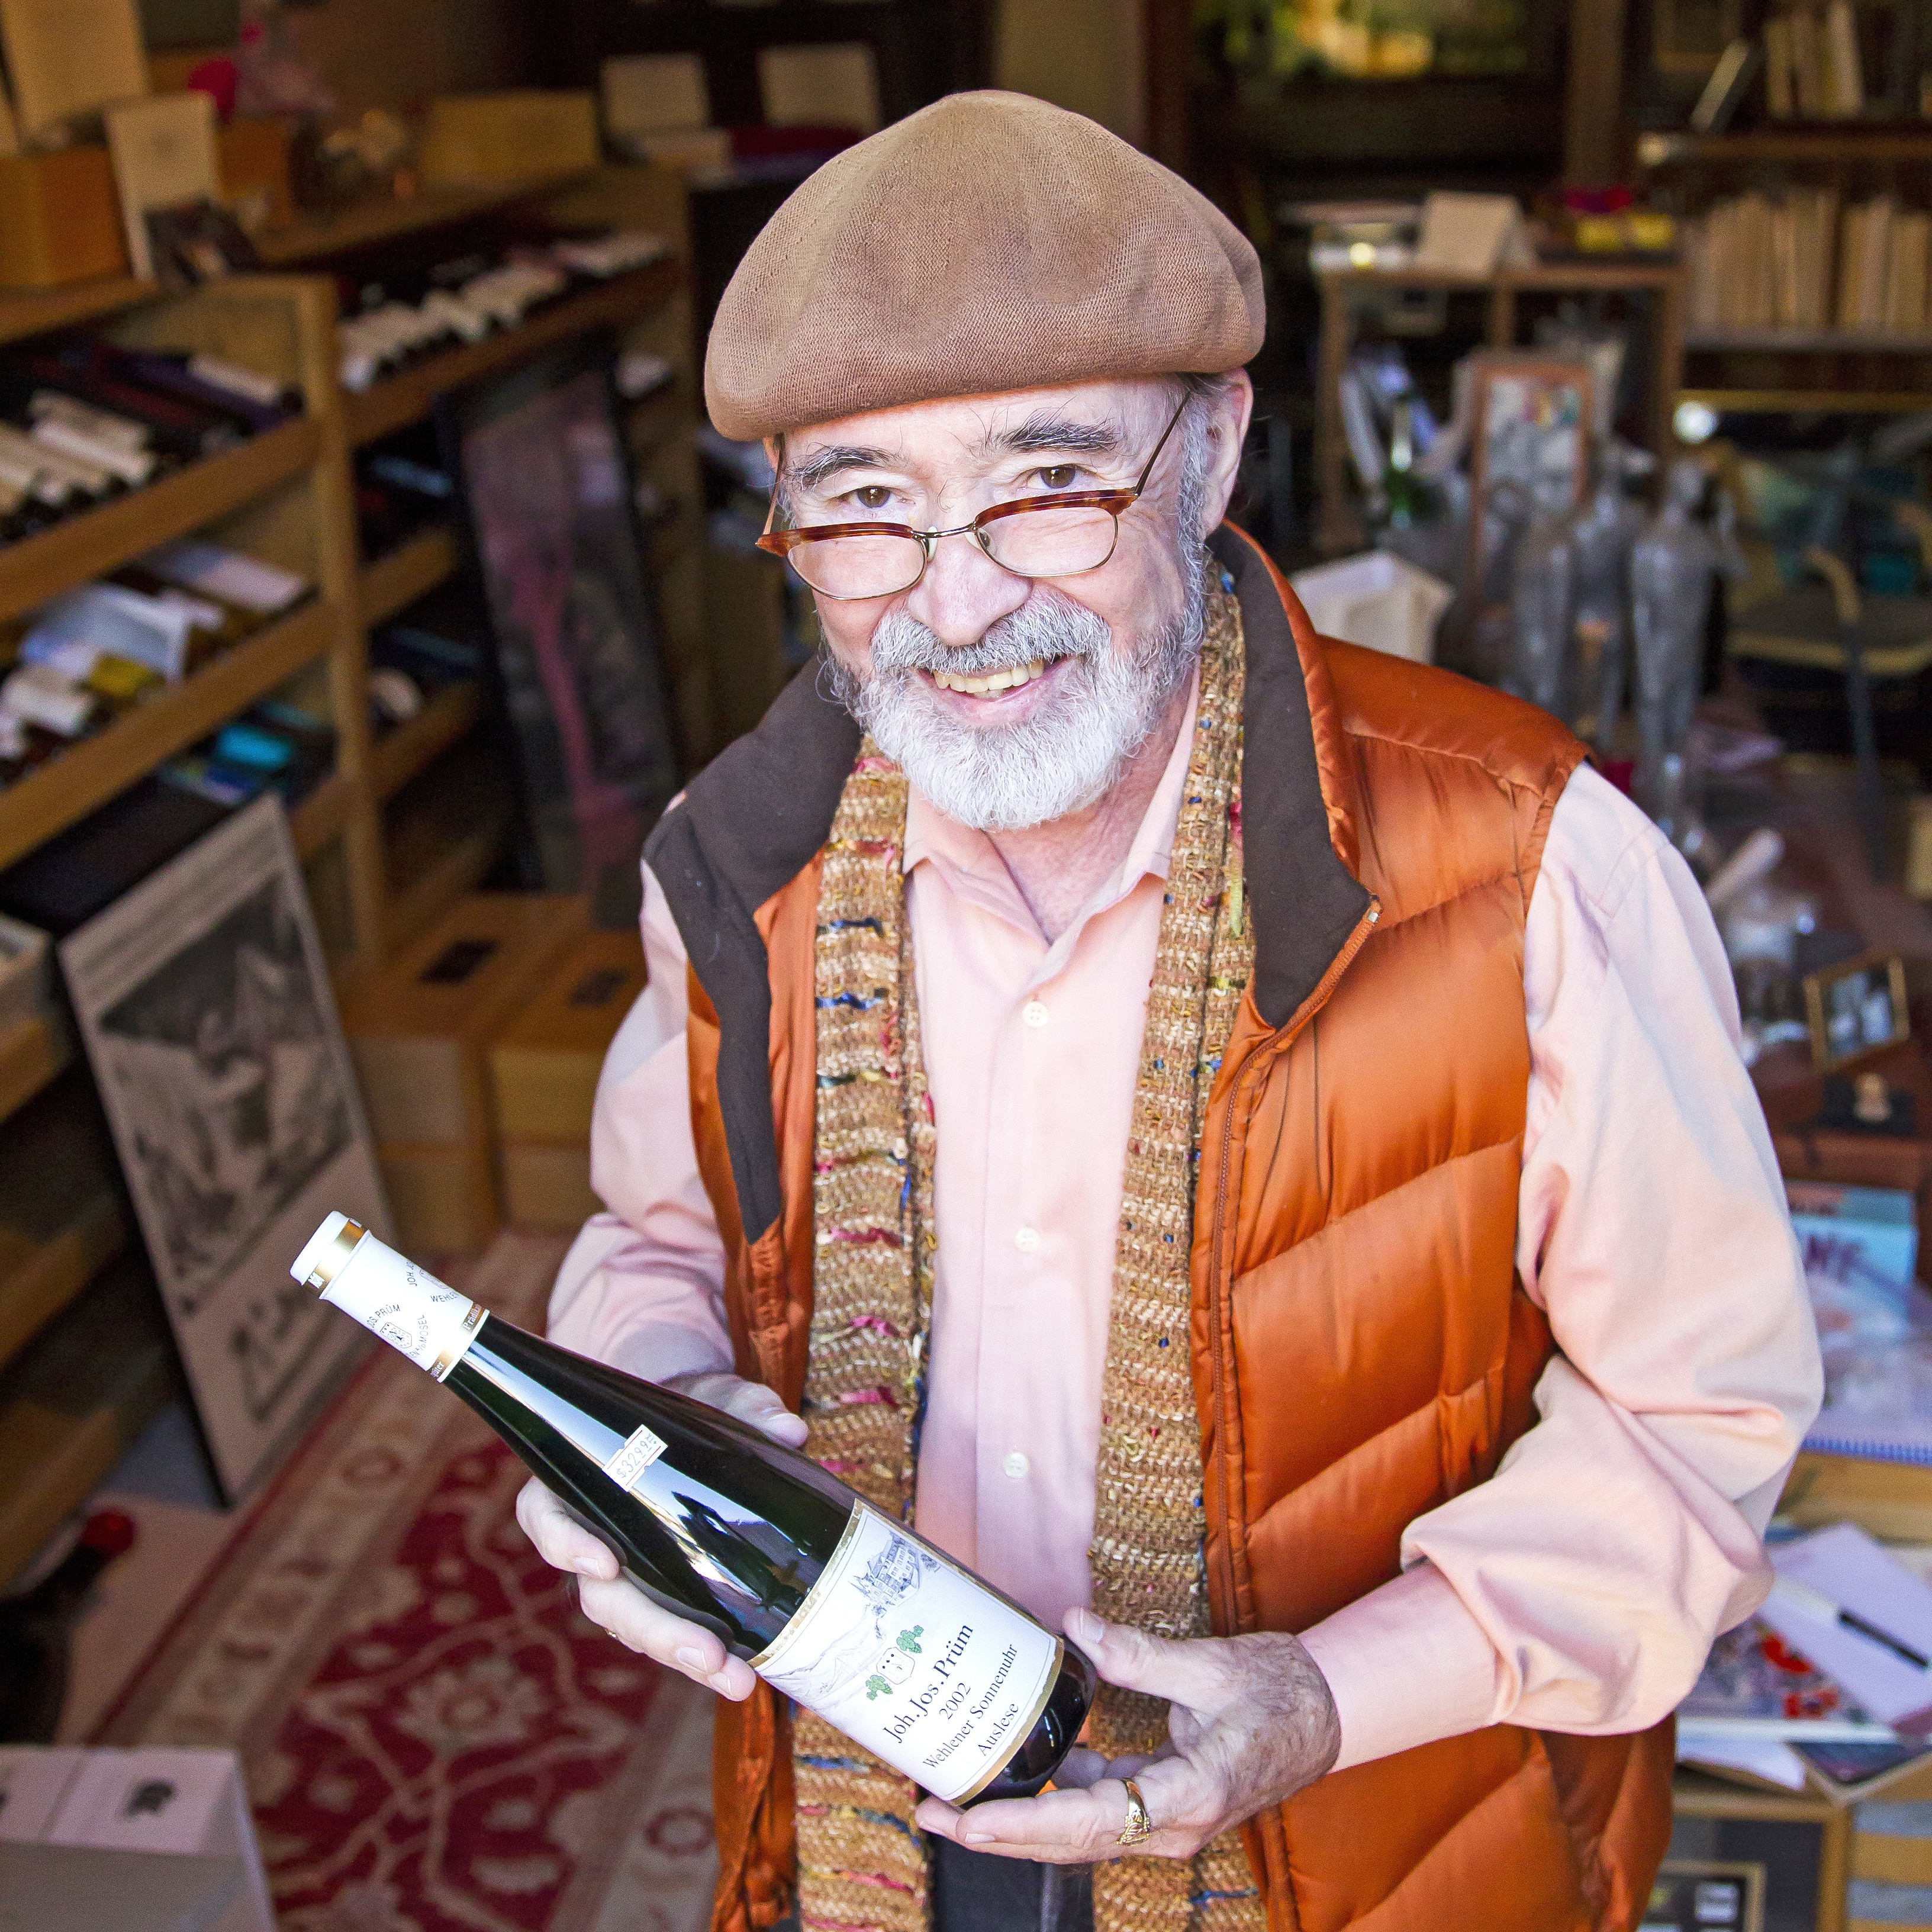 Putting SLO County wines on the map: Archie McLaren and the Central on